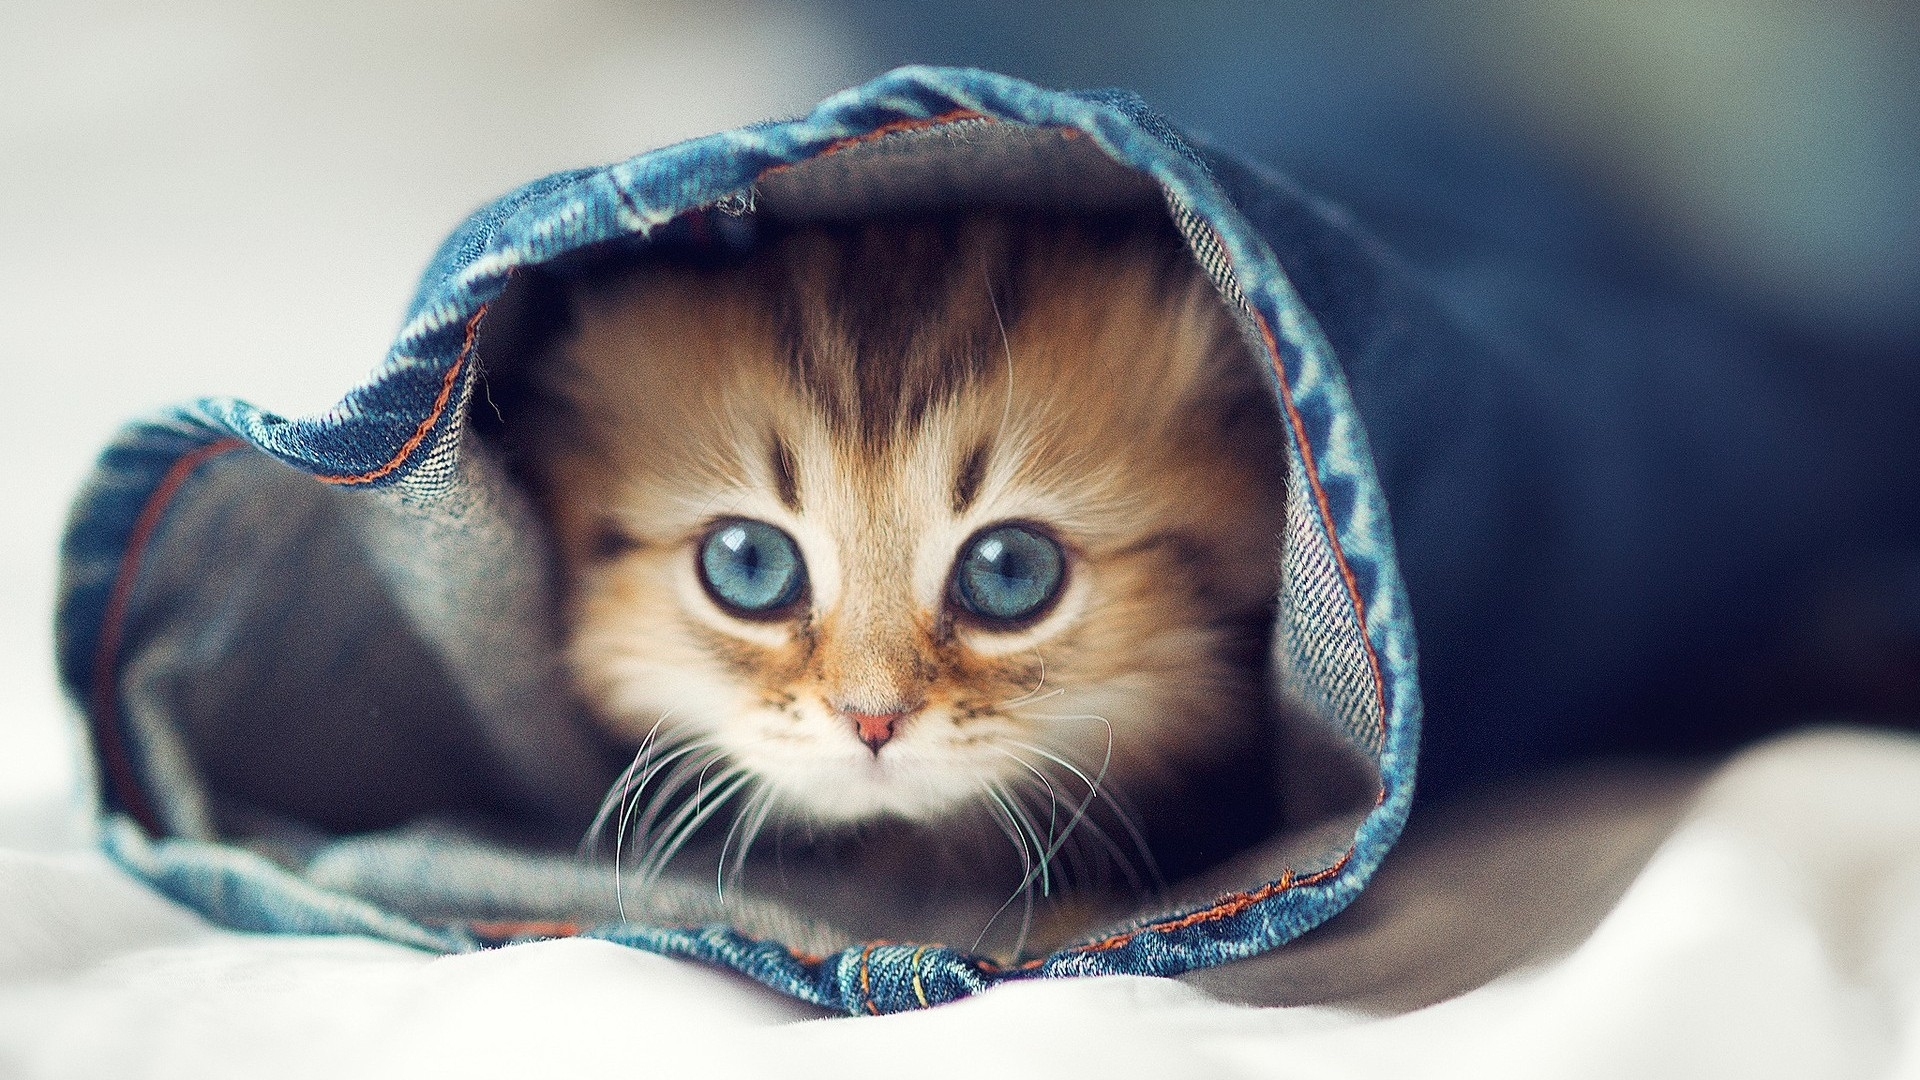 cute cats - cat wallpaper meme | hd wallpapers & photos